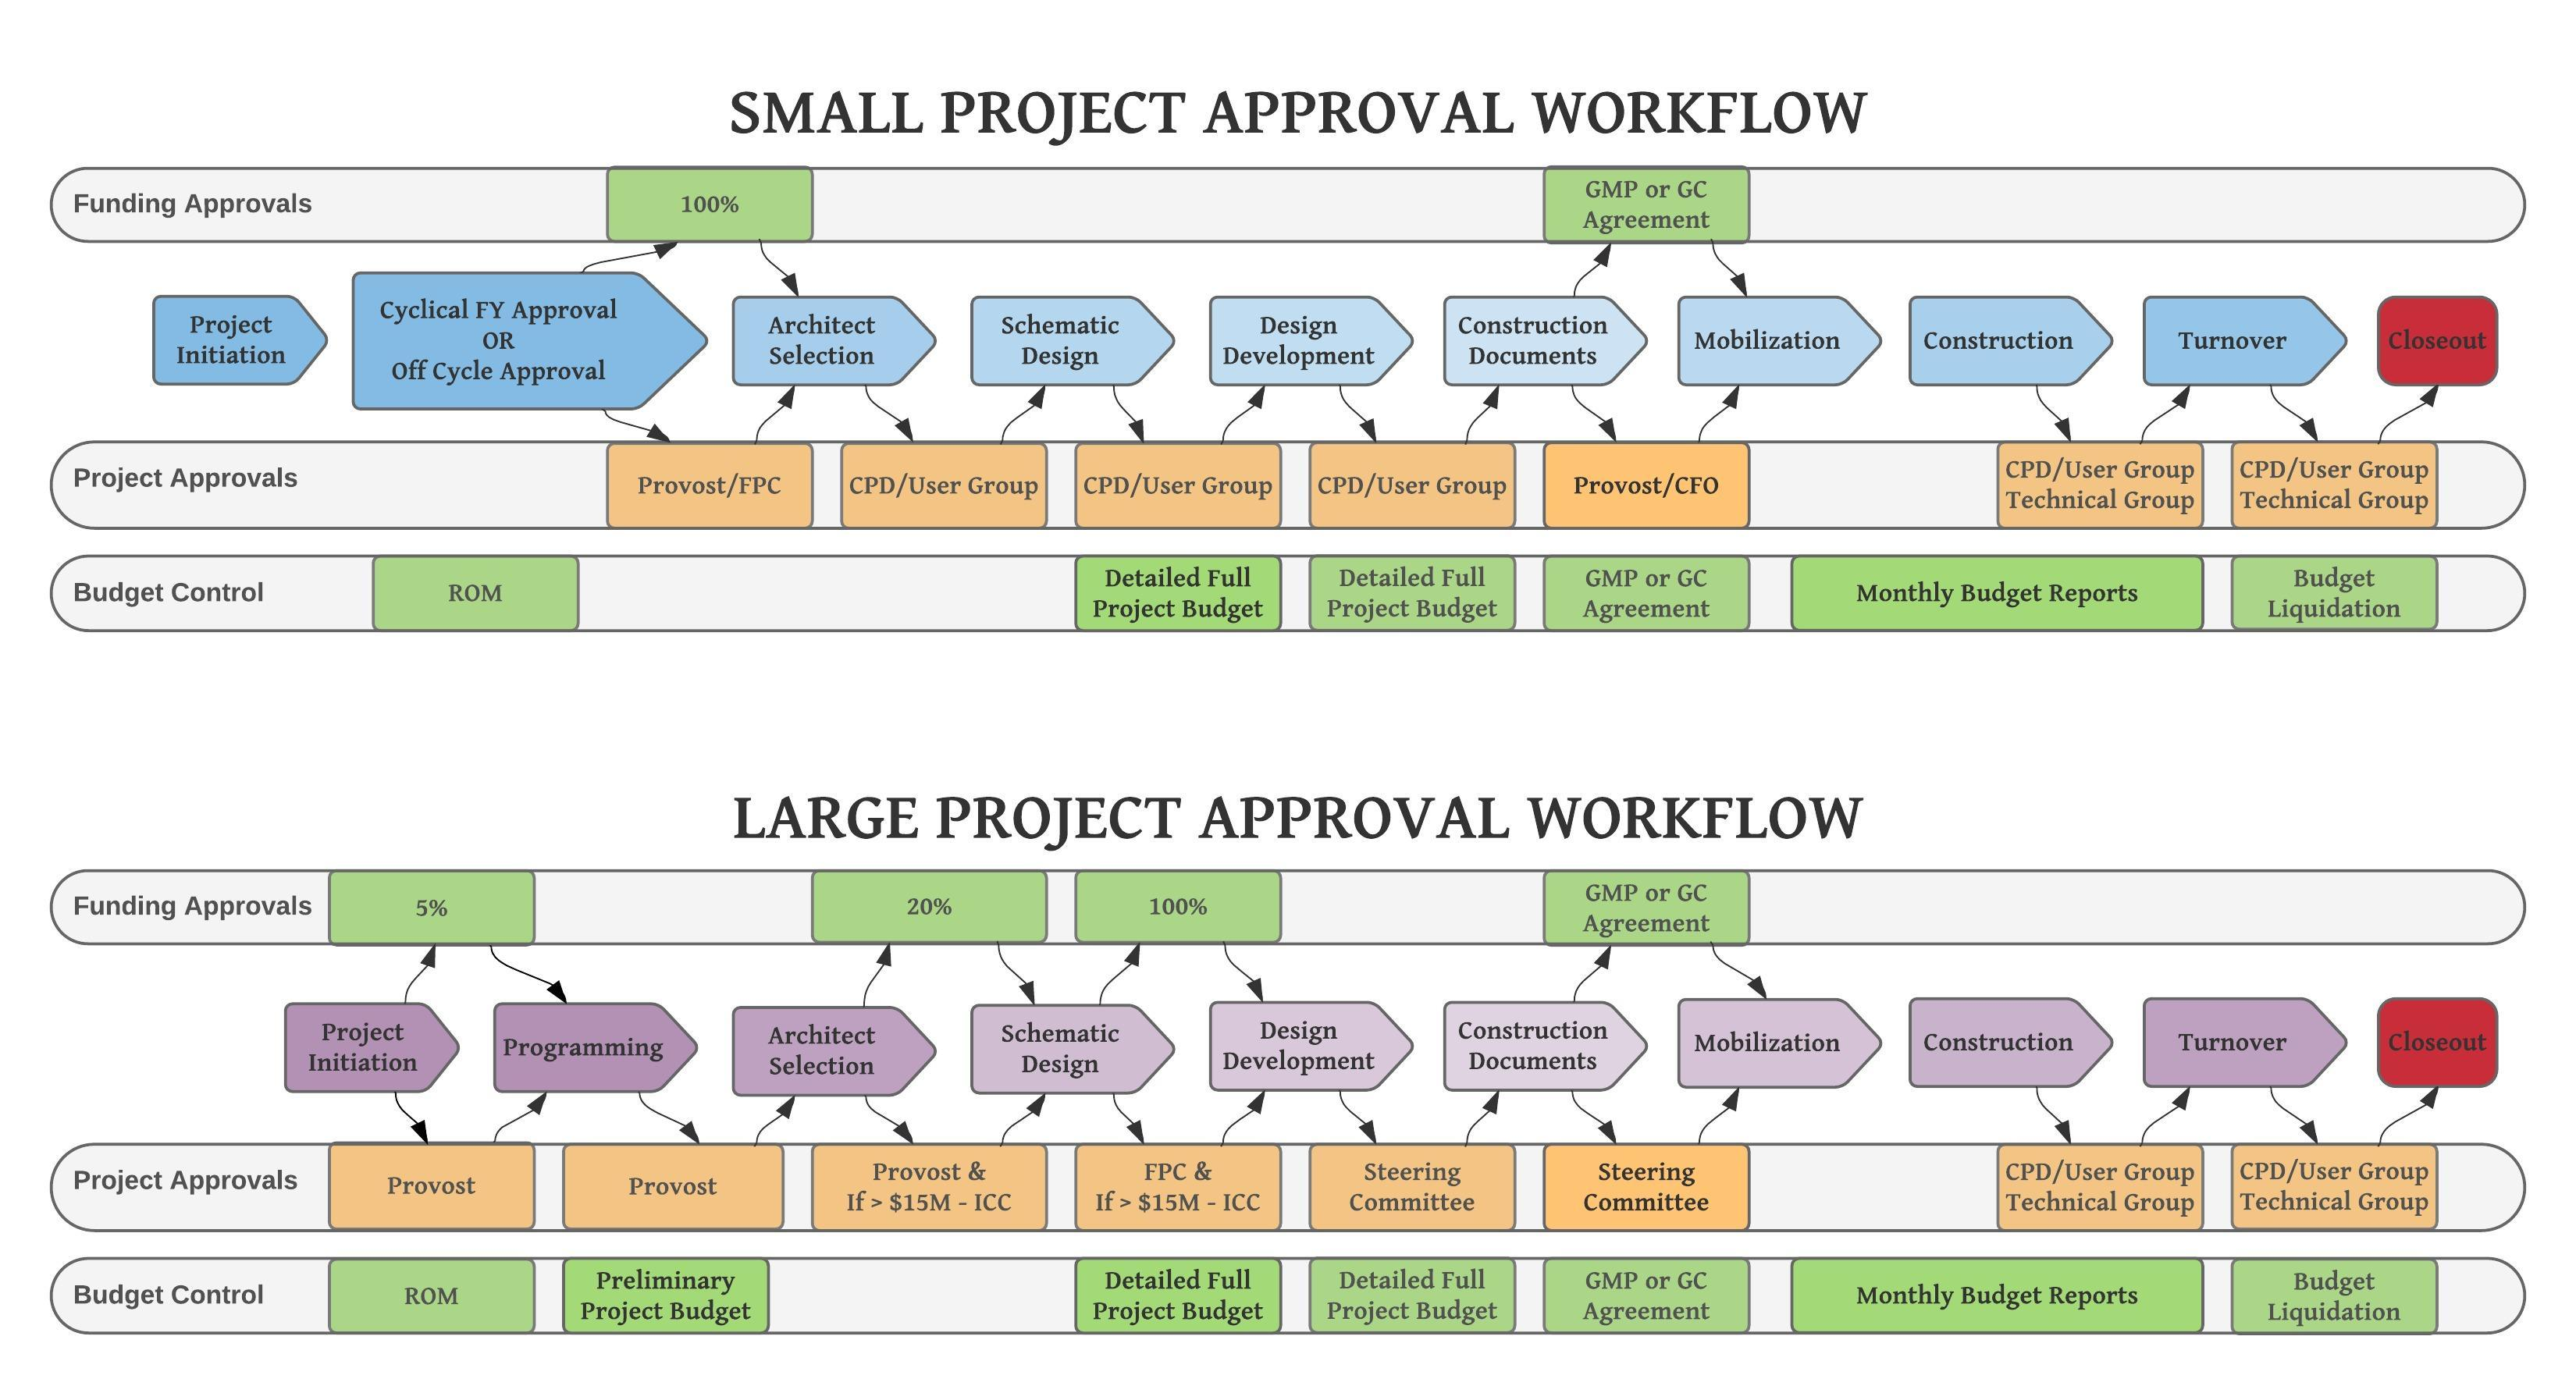 Closeout Approval Workflow